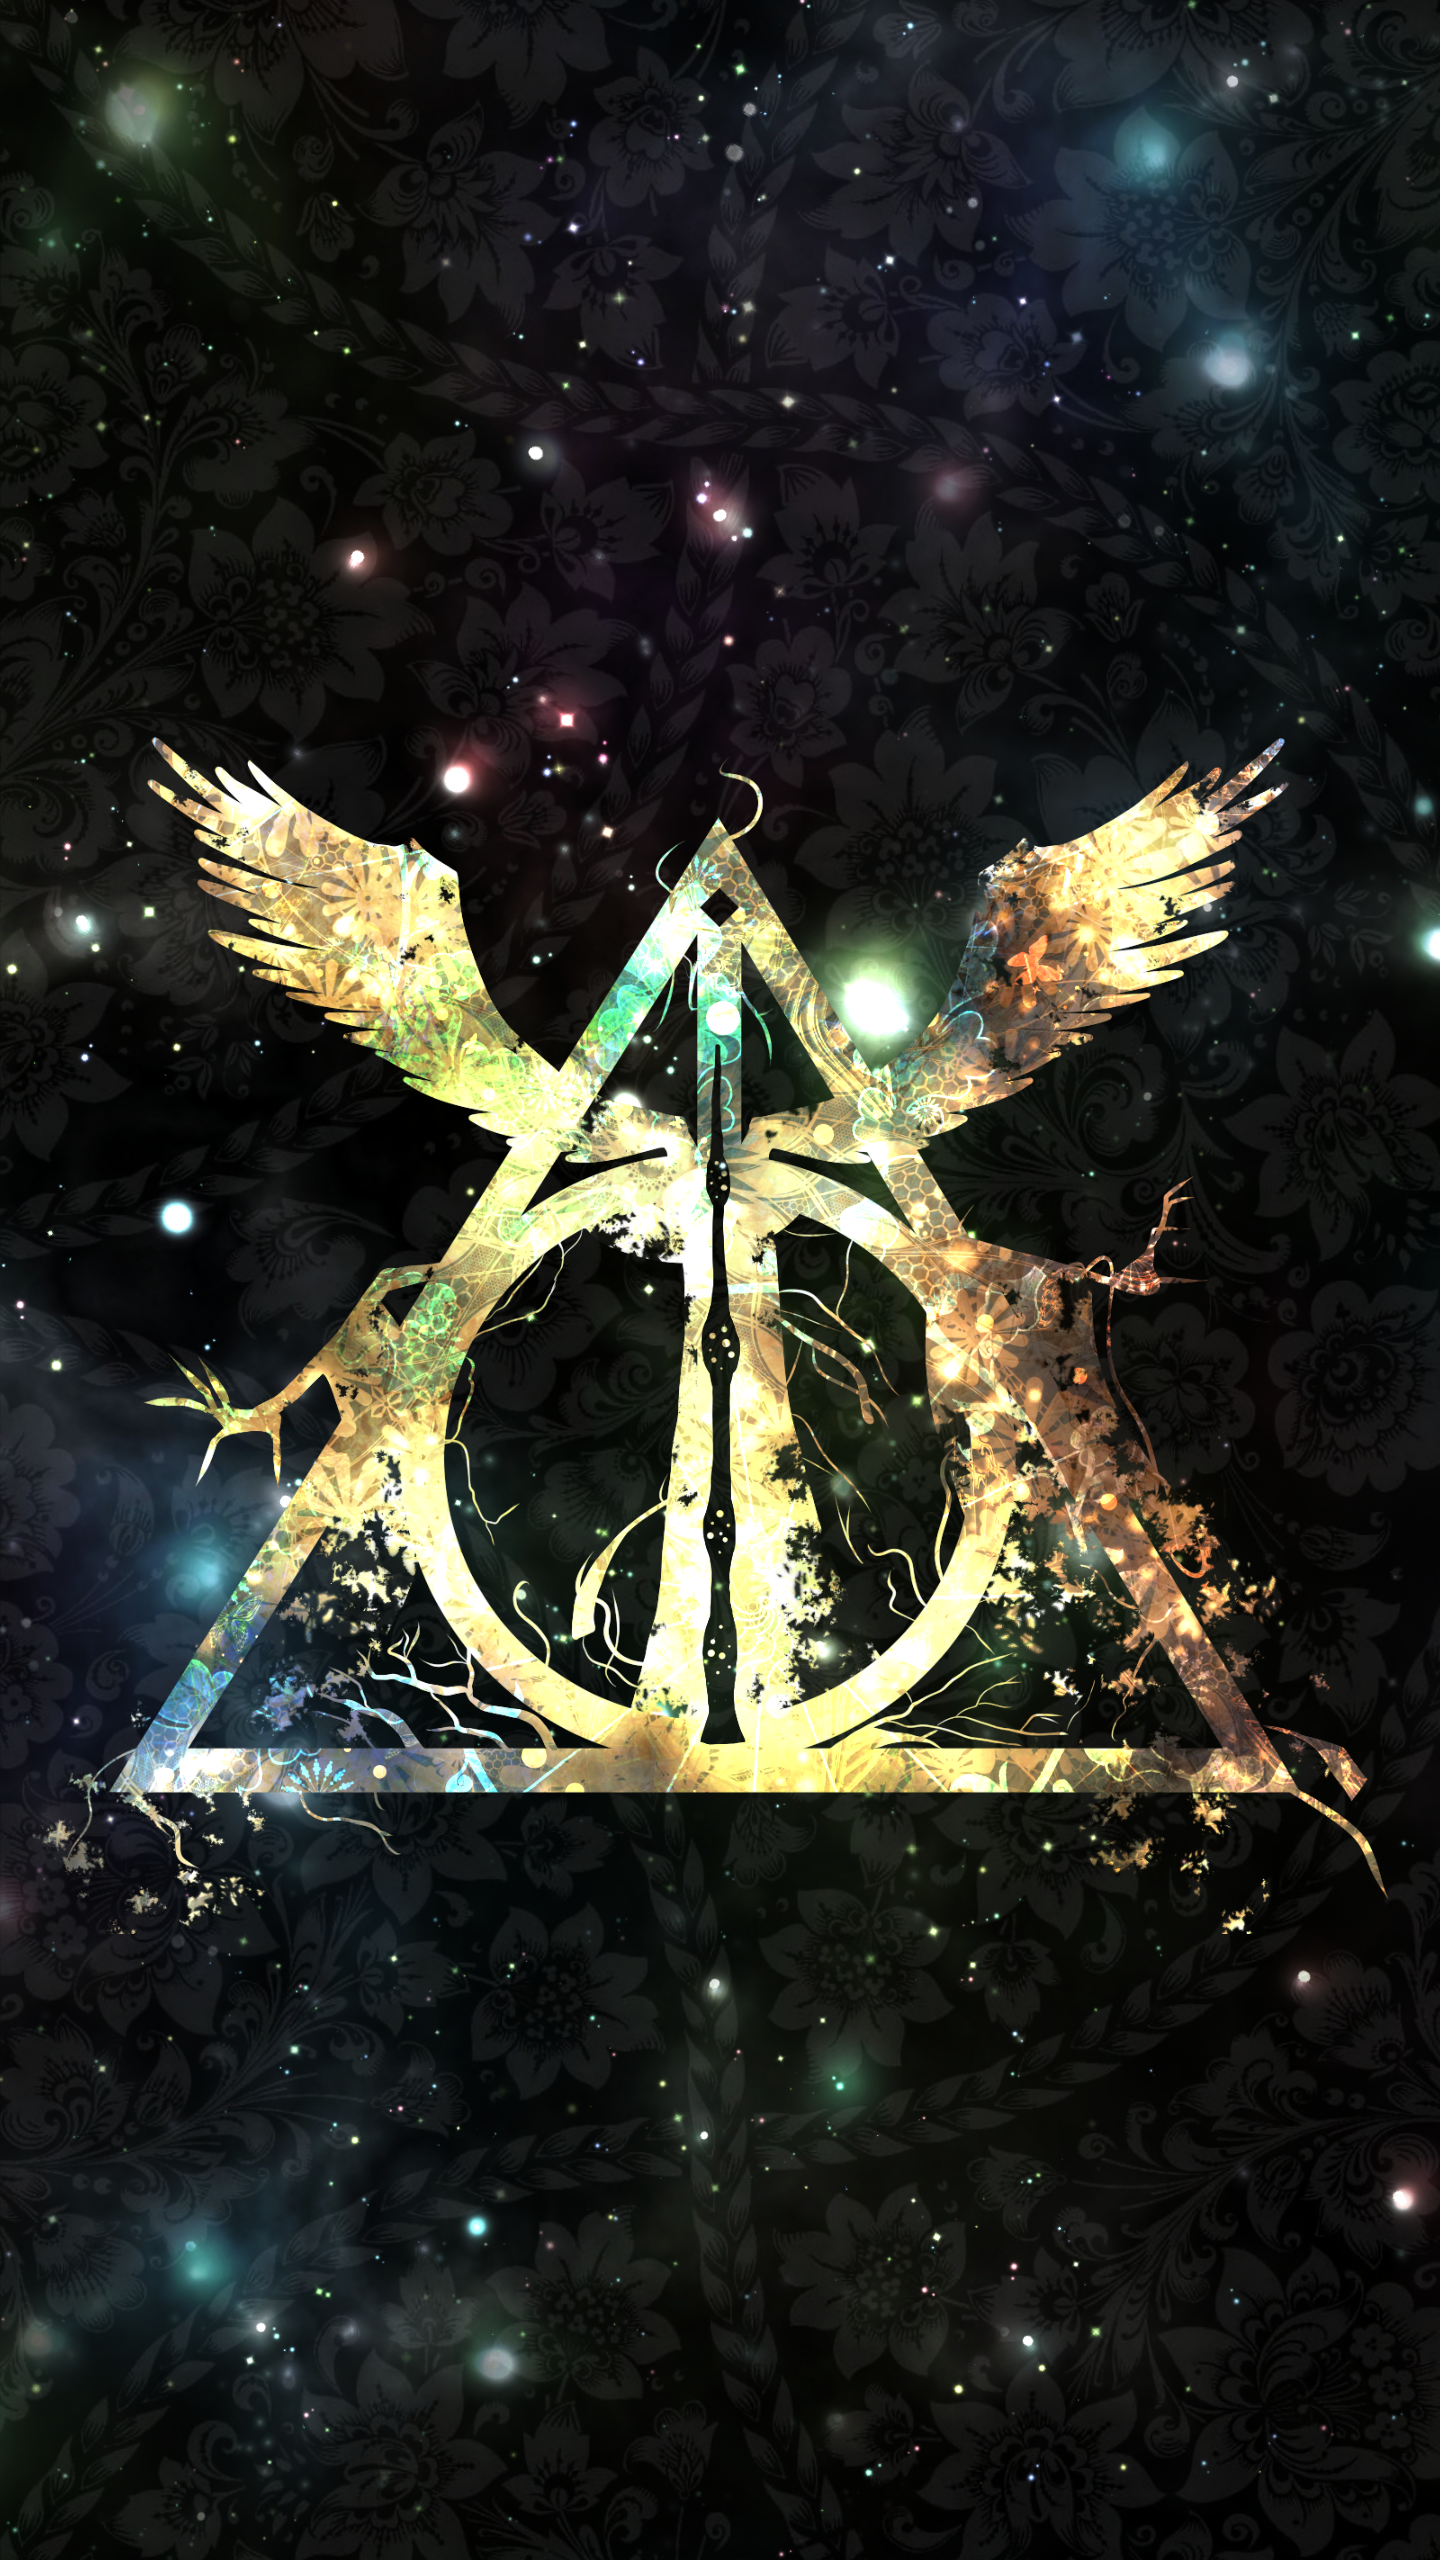 Wallpapers Harry Potter Harry Potter And The Deathly Hallows Symbol Wallpaper Wide Click